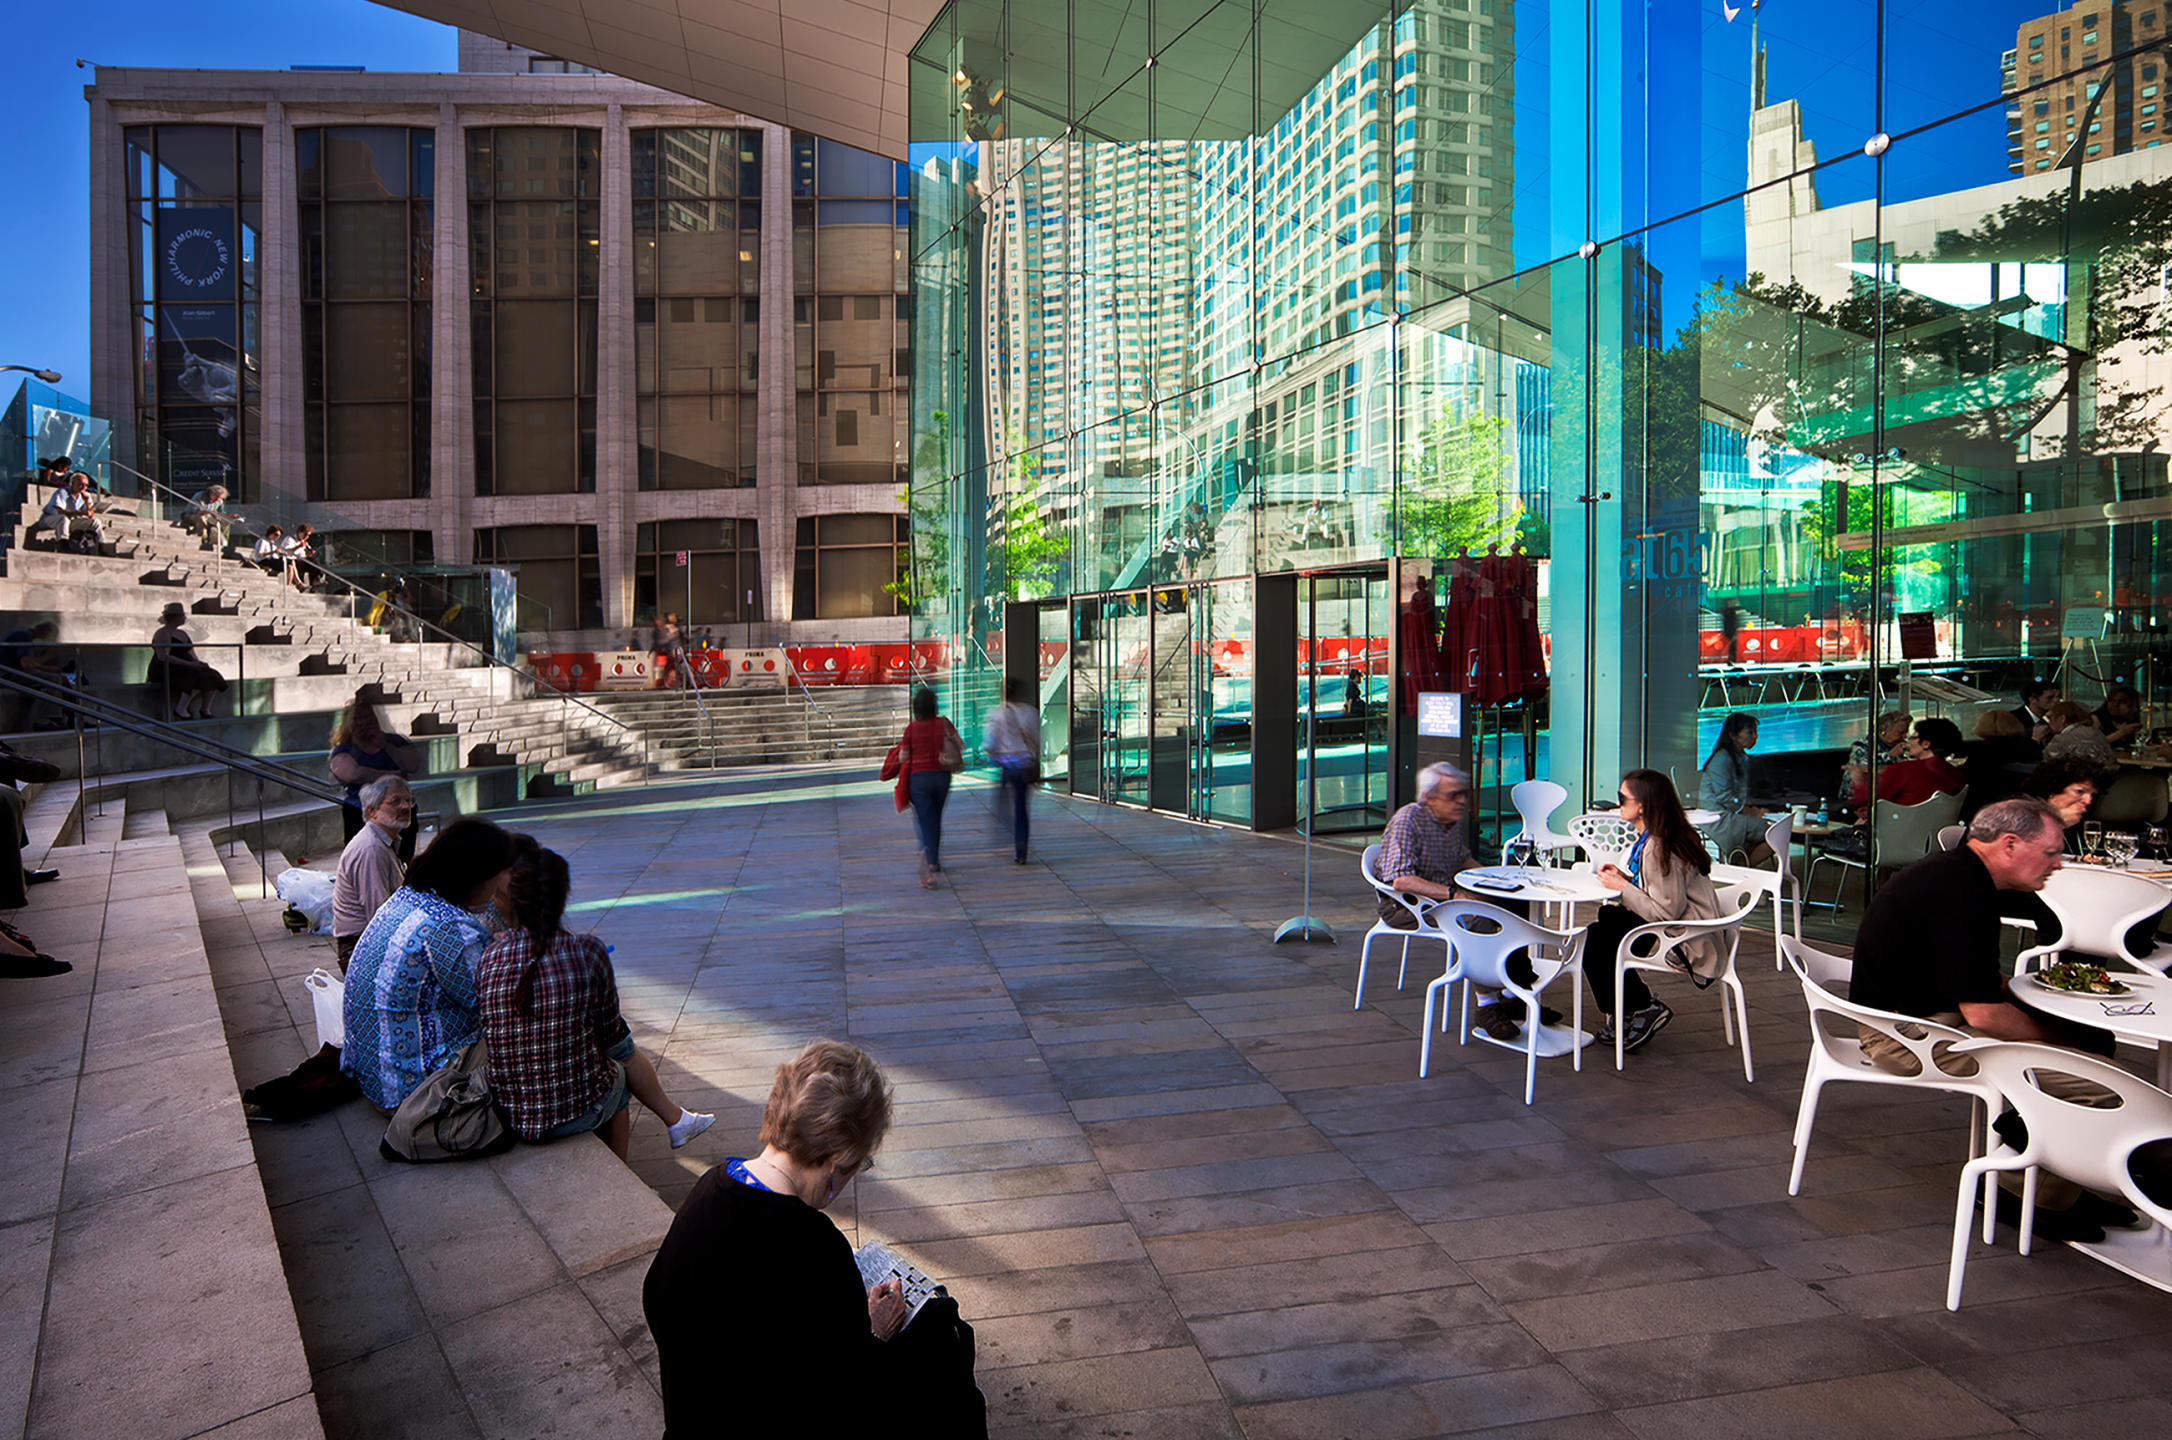 Open area cafe at Alice Tully Hall, NYC Lincoln Center renovated by Diller Scofidio  + Renfro : Miscellanous Projects : New York NY Architectural Photographer | Interior and Exterior